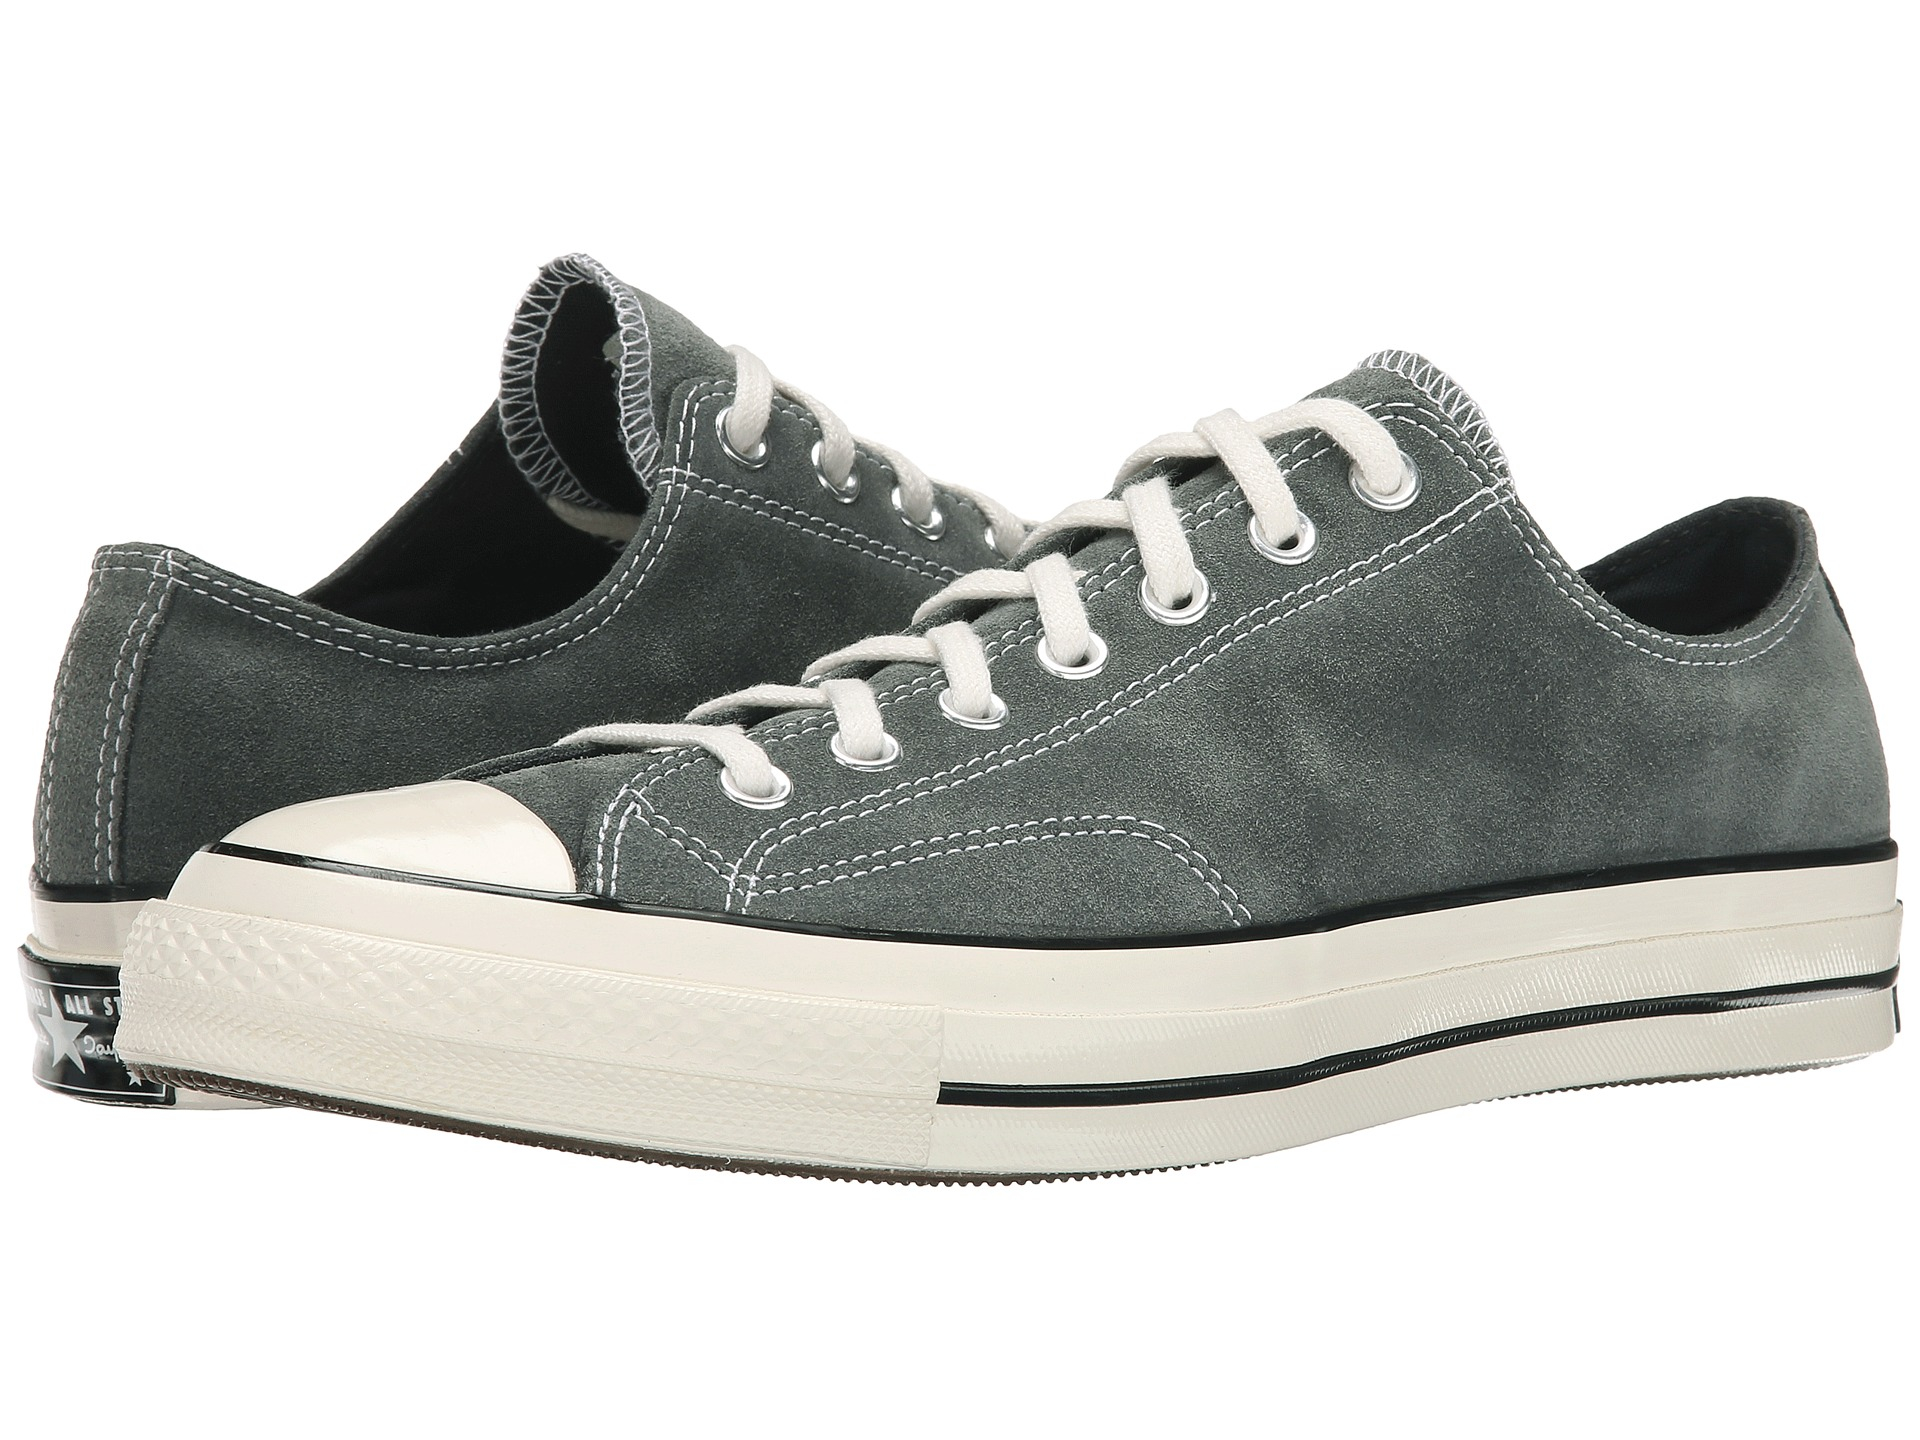 Lyst - Converse Chuck Taylor® All Star® 70 Ox Suede in Gray for Men 706e43350